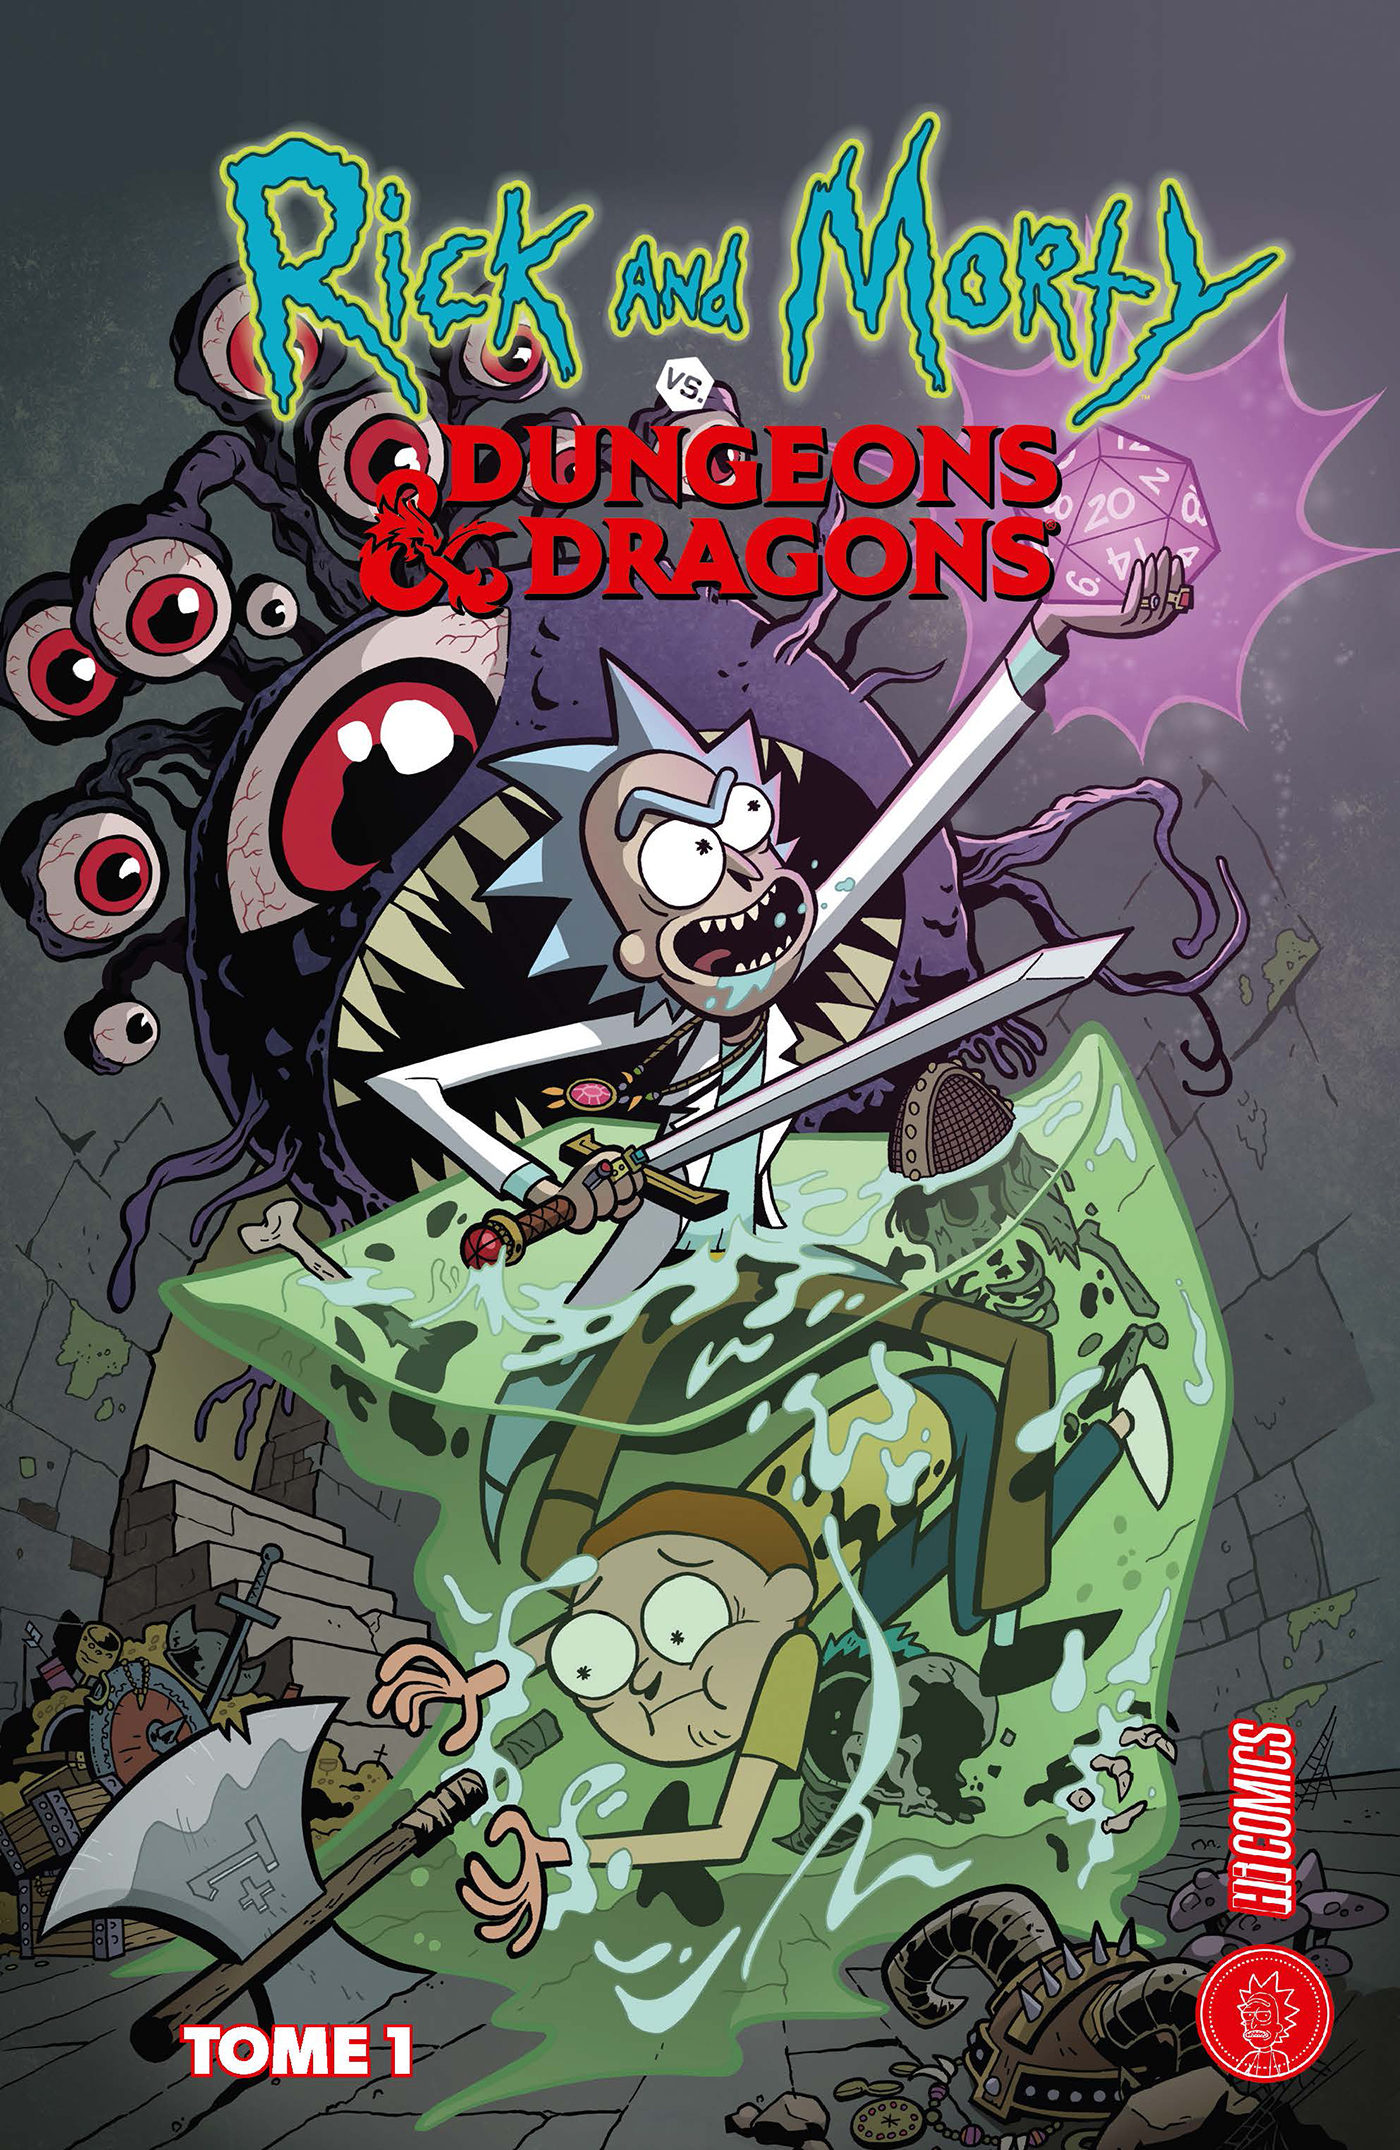 Les univers de Rick & Morty : Rick & Morty x Dungeons & Dragons